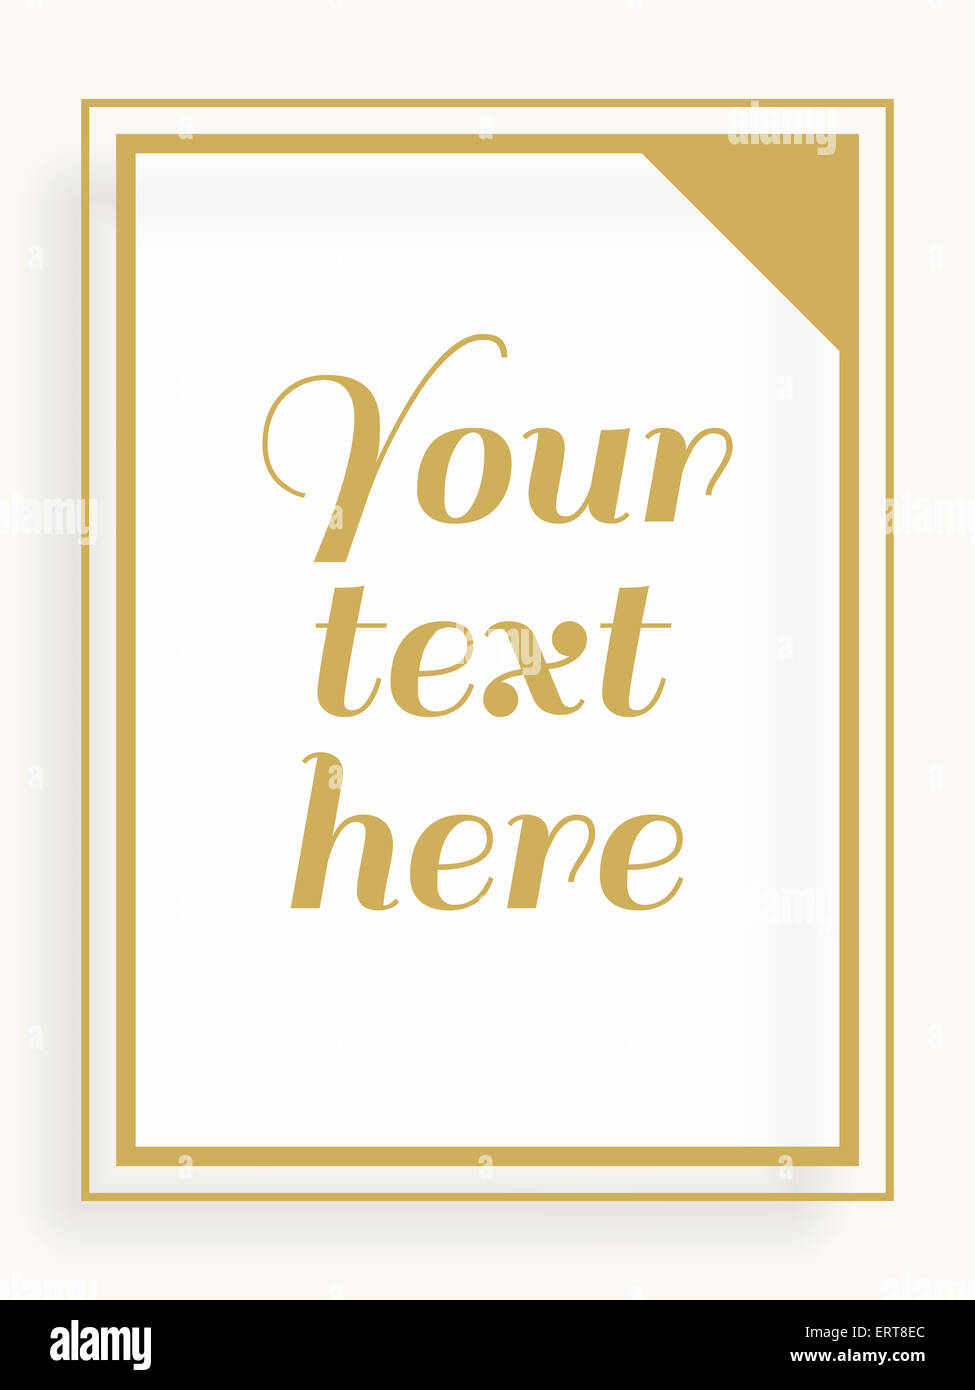 Simple White Picture Frame Stock Photos & Simple White Picture Frame ...